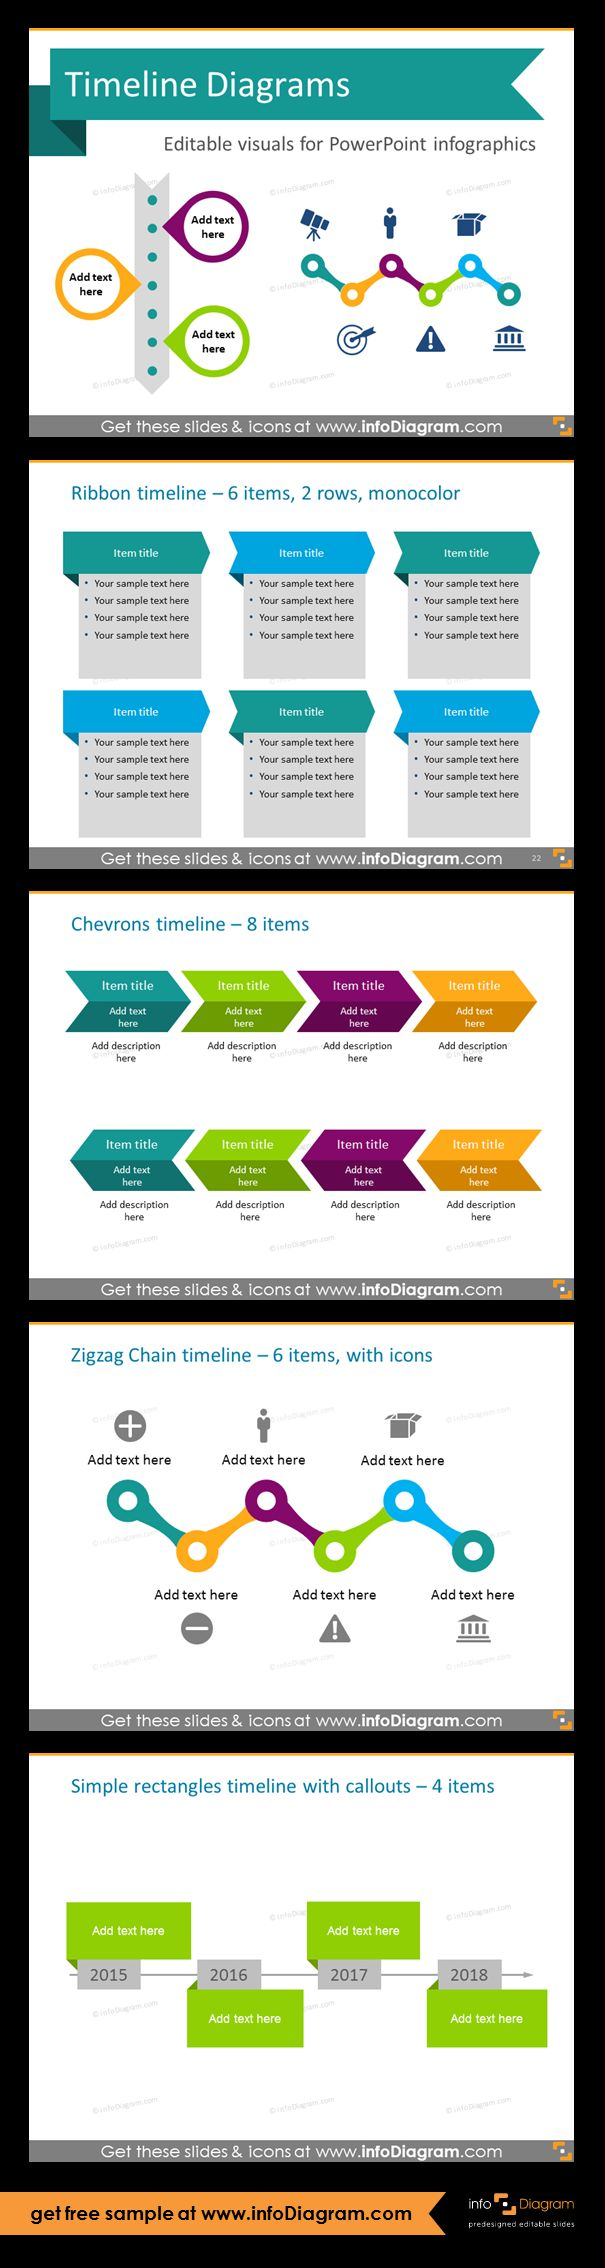 Template slides for Timeline diagrams and Time infographics. Editable PowerPoint graphics for showing history, agenda, linear process flow charts, project timelines, planning phases and roadmaps by modern infographics. Ribbon, chevron, zigzag chain and simple rectangles timelines. Make a unique eye-catching strategic slides to impress your audience.